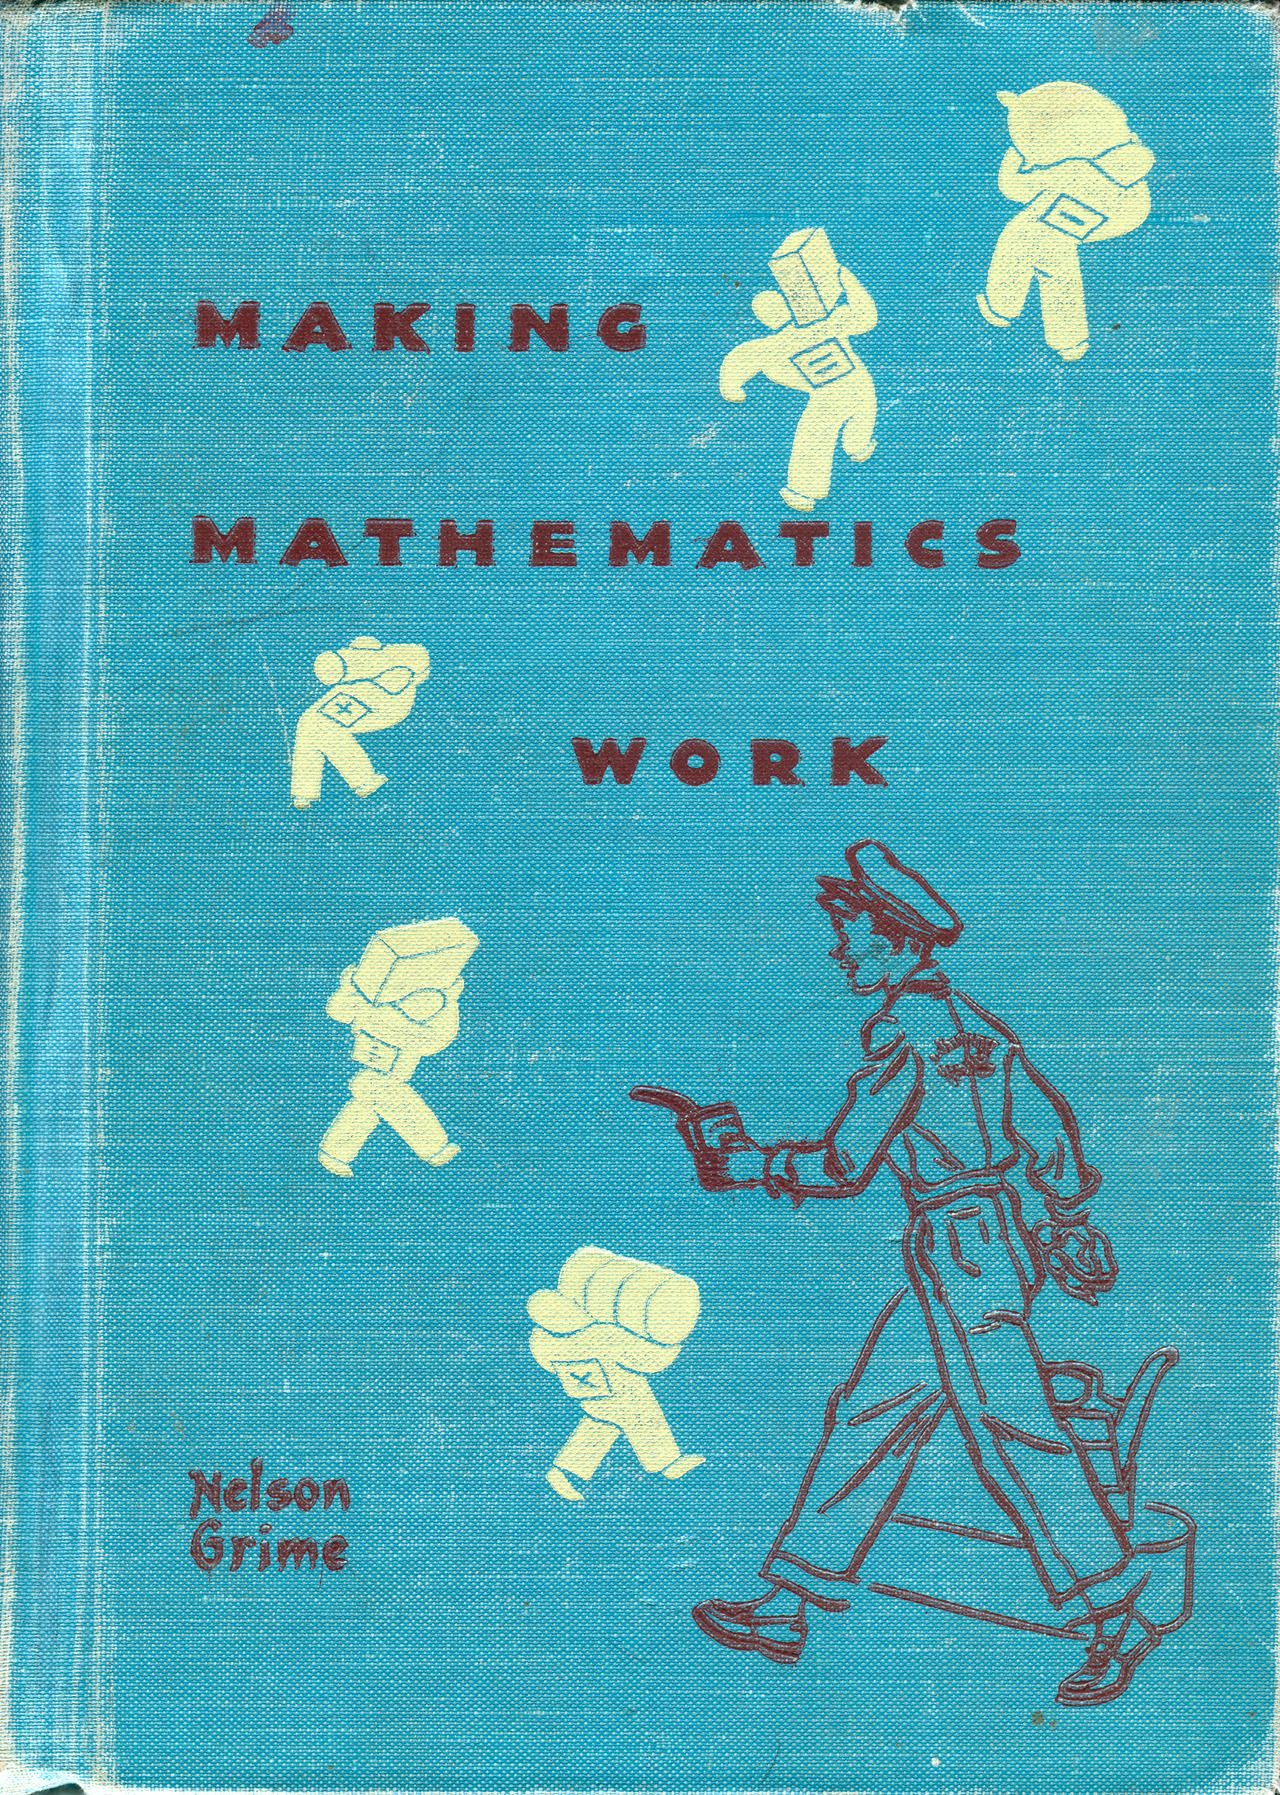 Book Cover Design Reference : Pin by michael newhouse on inspiration vintage textbooks